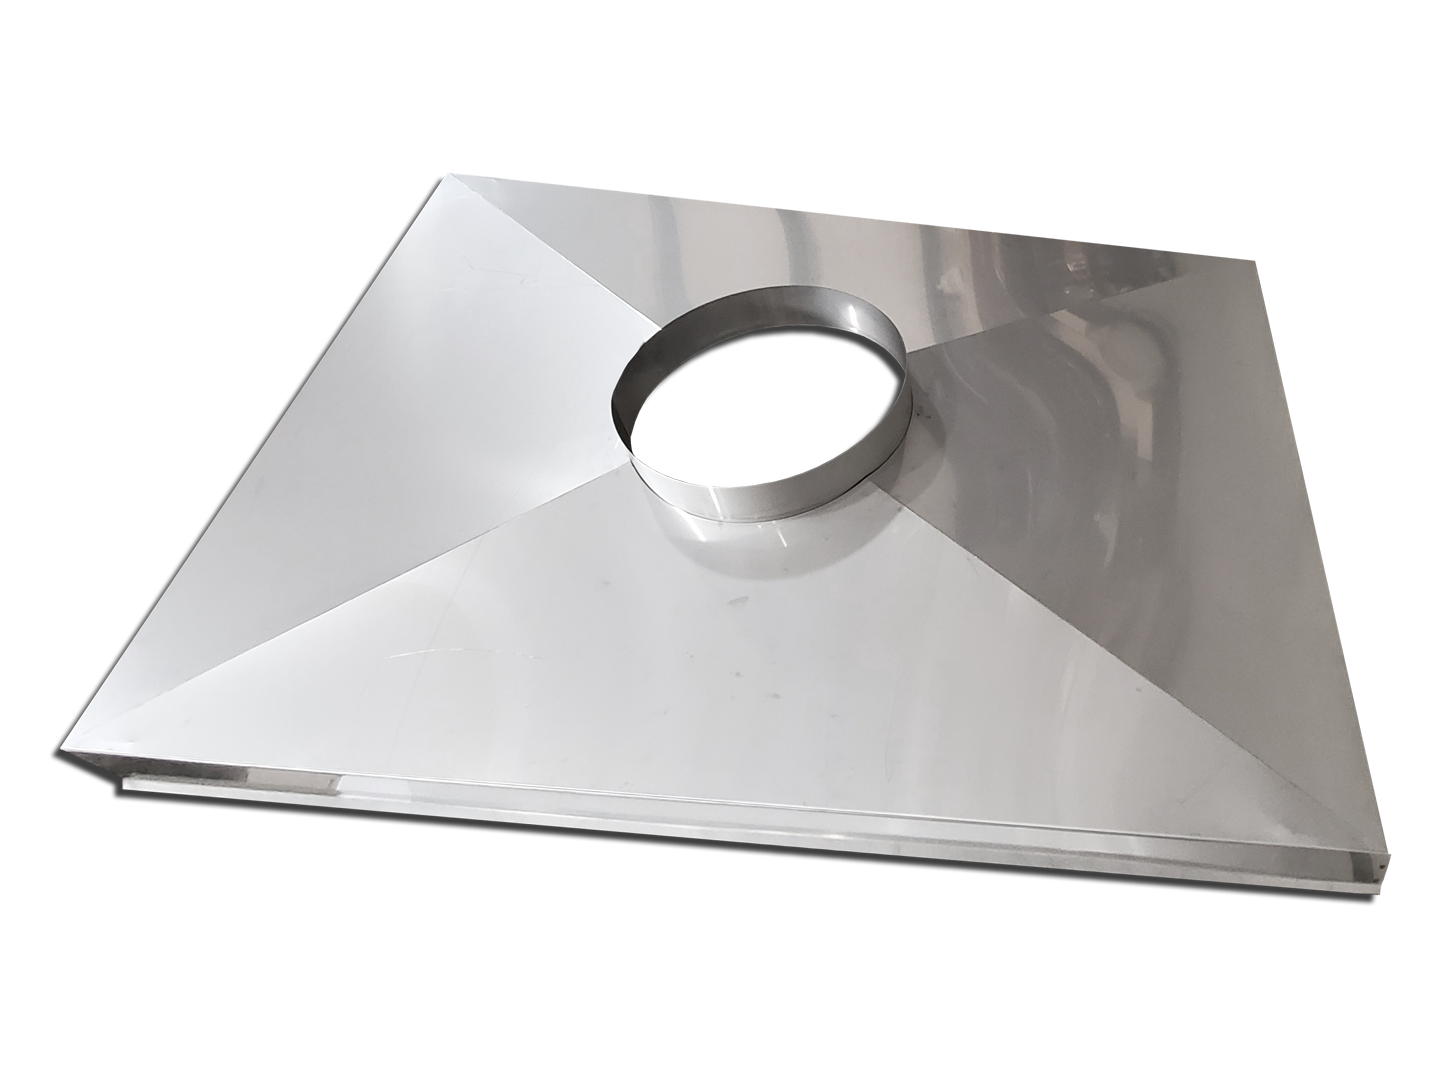 #CC200 - Stainless steel chimney chase cover